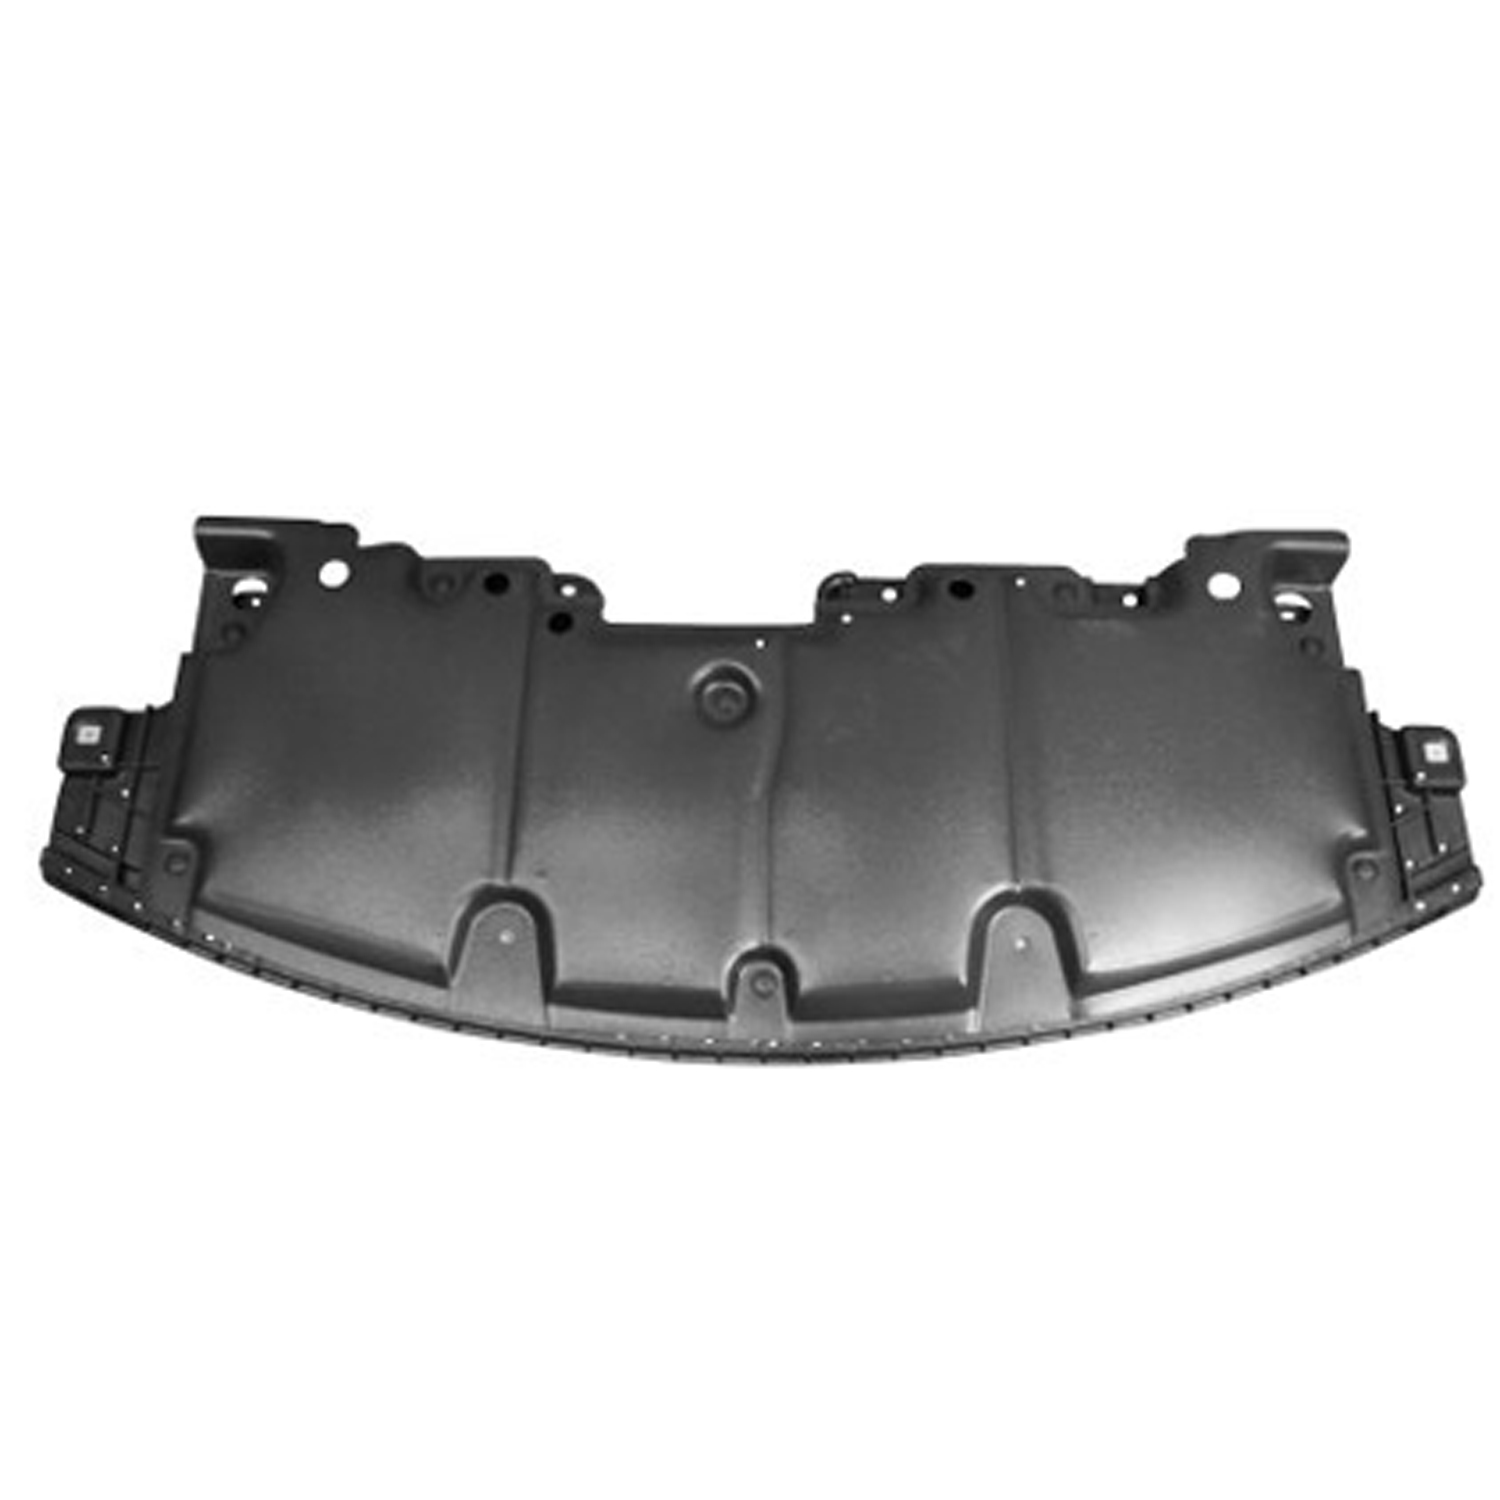 Value Front Center Undercar Shield OE Quality Replacement